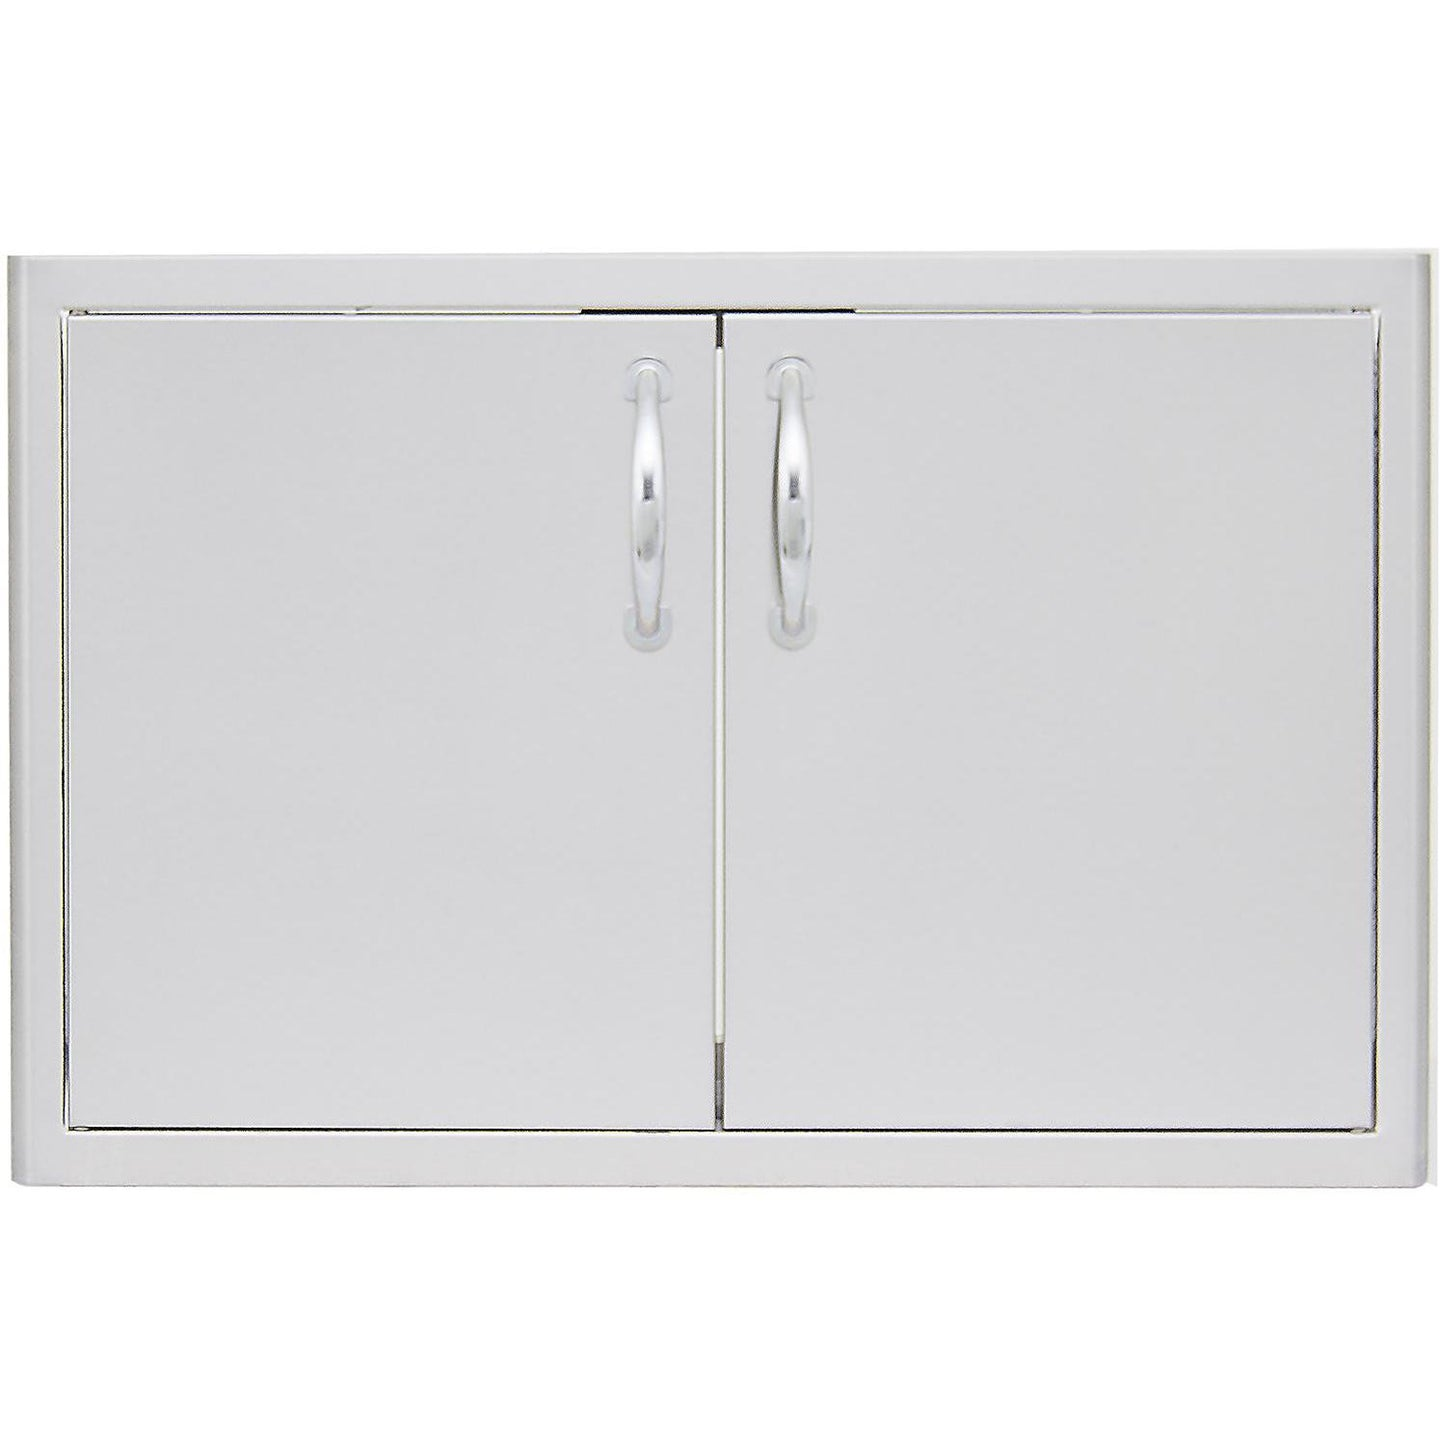 Blaze 40-Inch Double Access Door With Paper Towel Holder - The Garden District